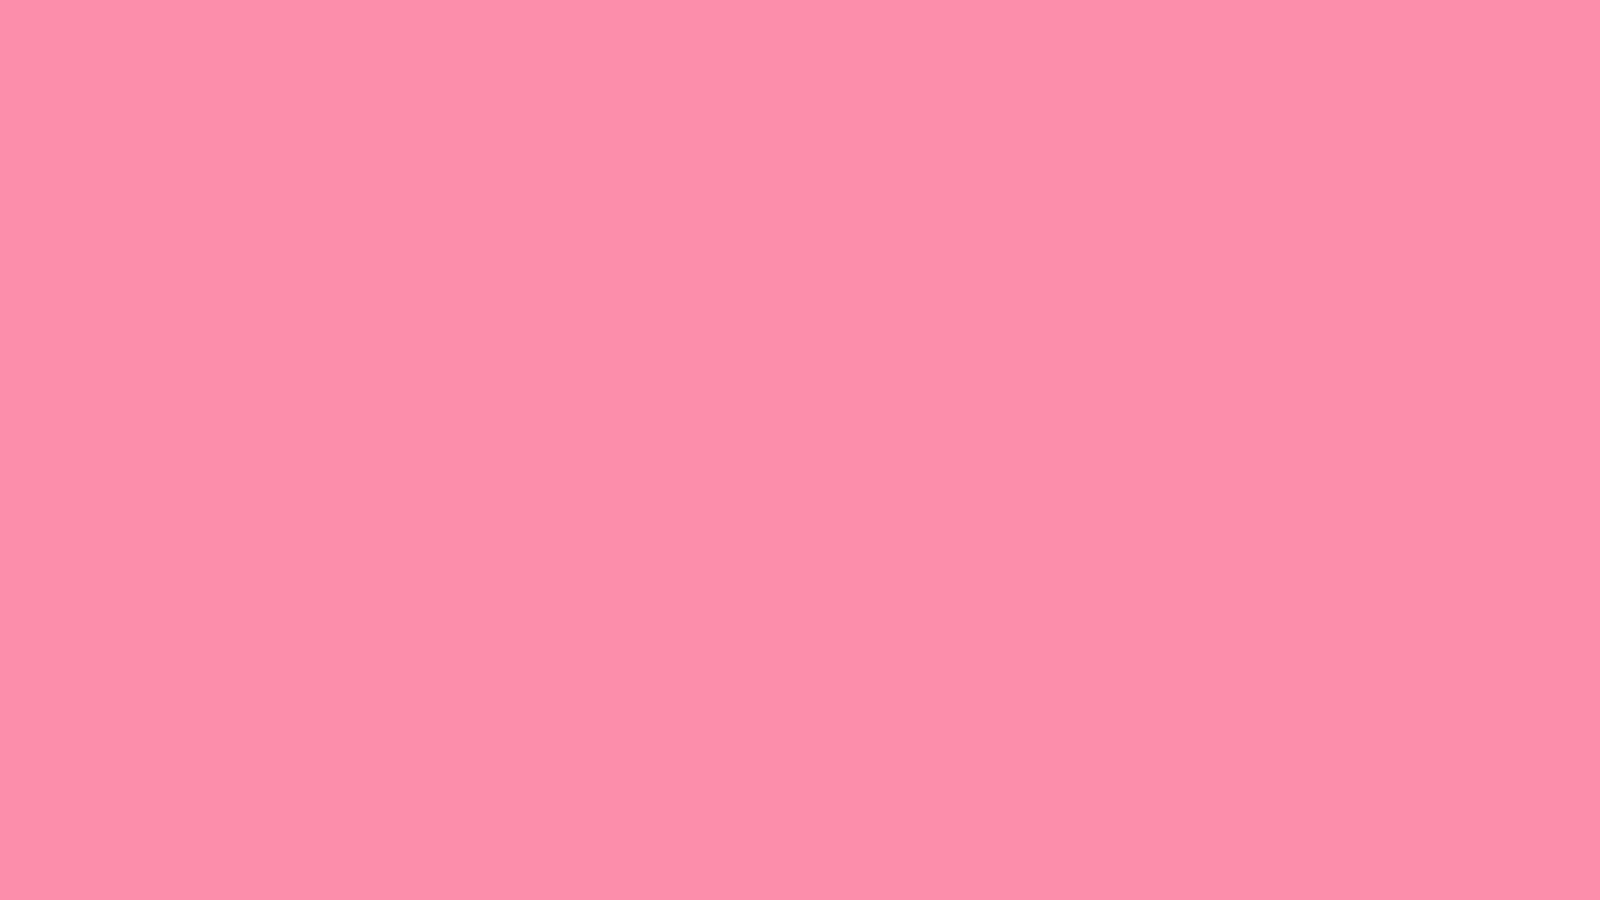 1600x900 Flamingo Pink Solid Color Background